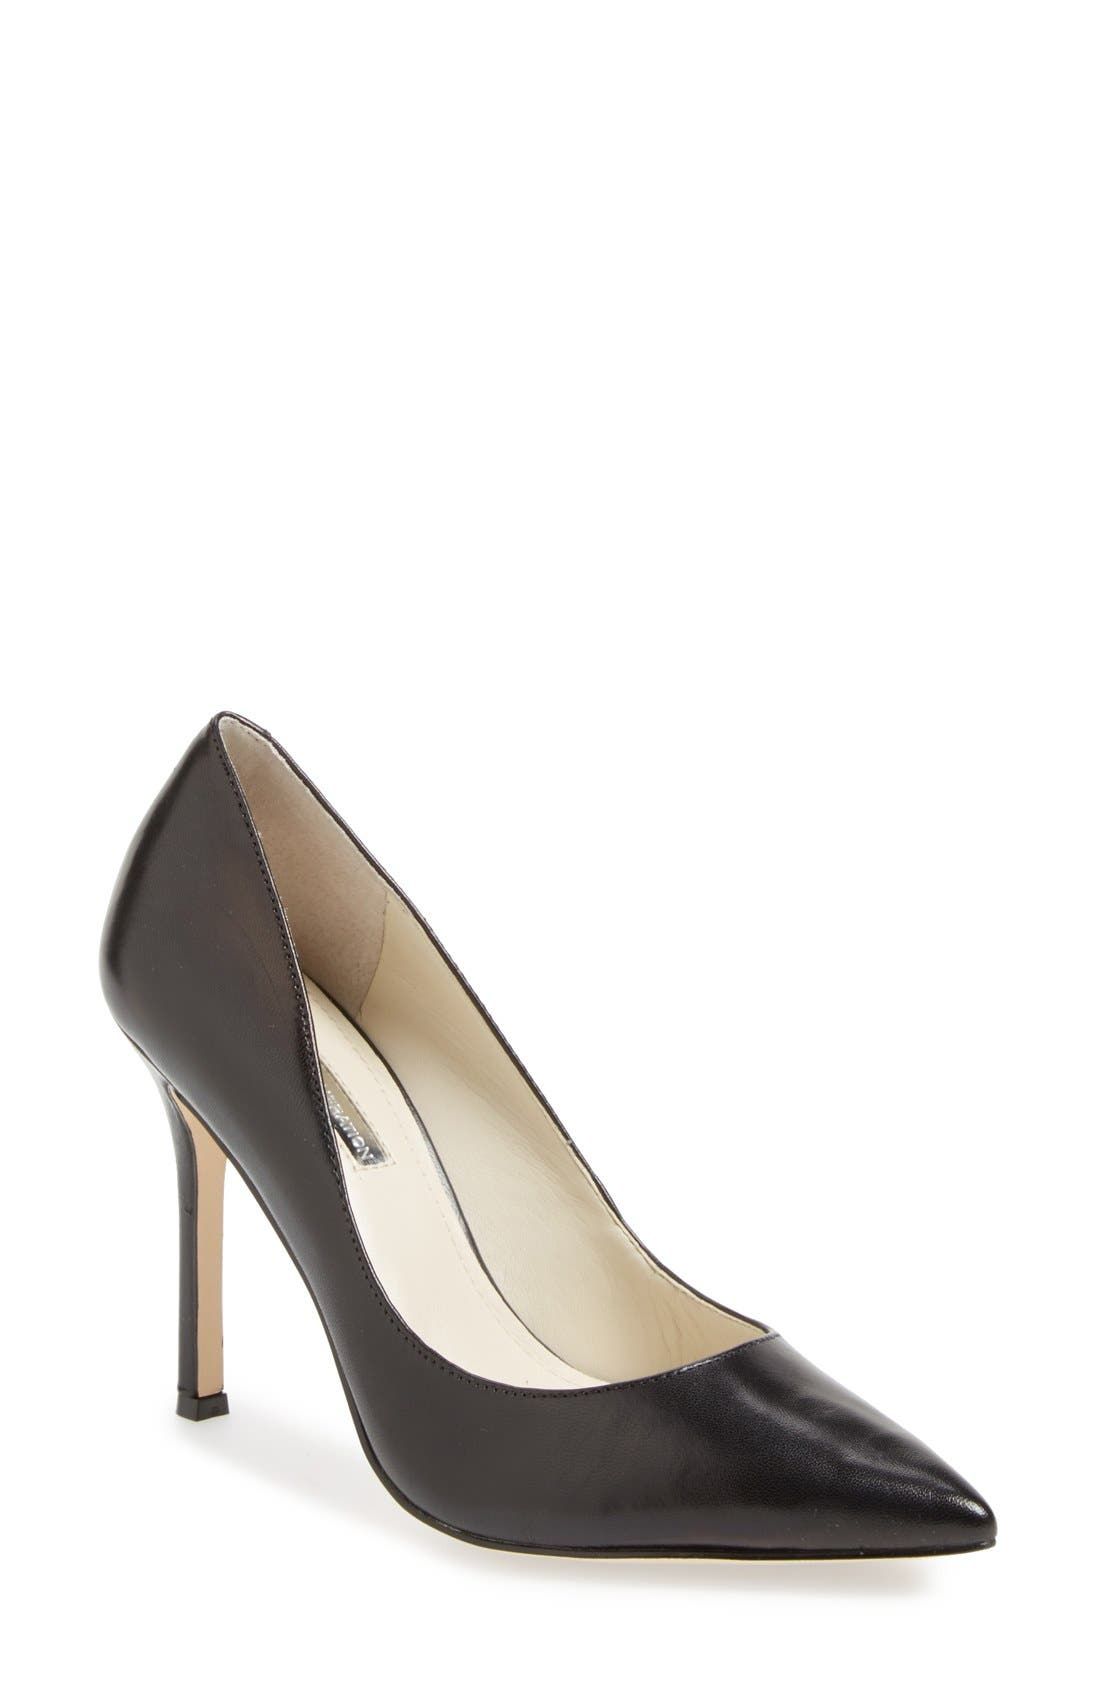 'Treasure' Pointy Toe Pump,                             Main thumbnail 1, color,                             001